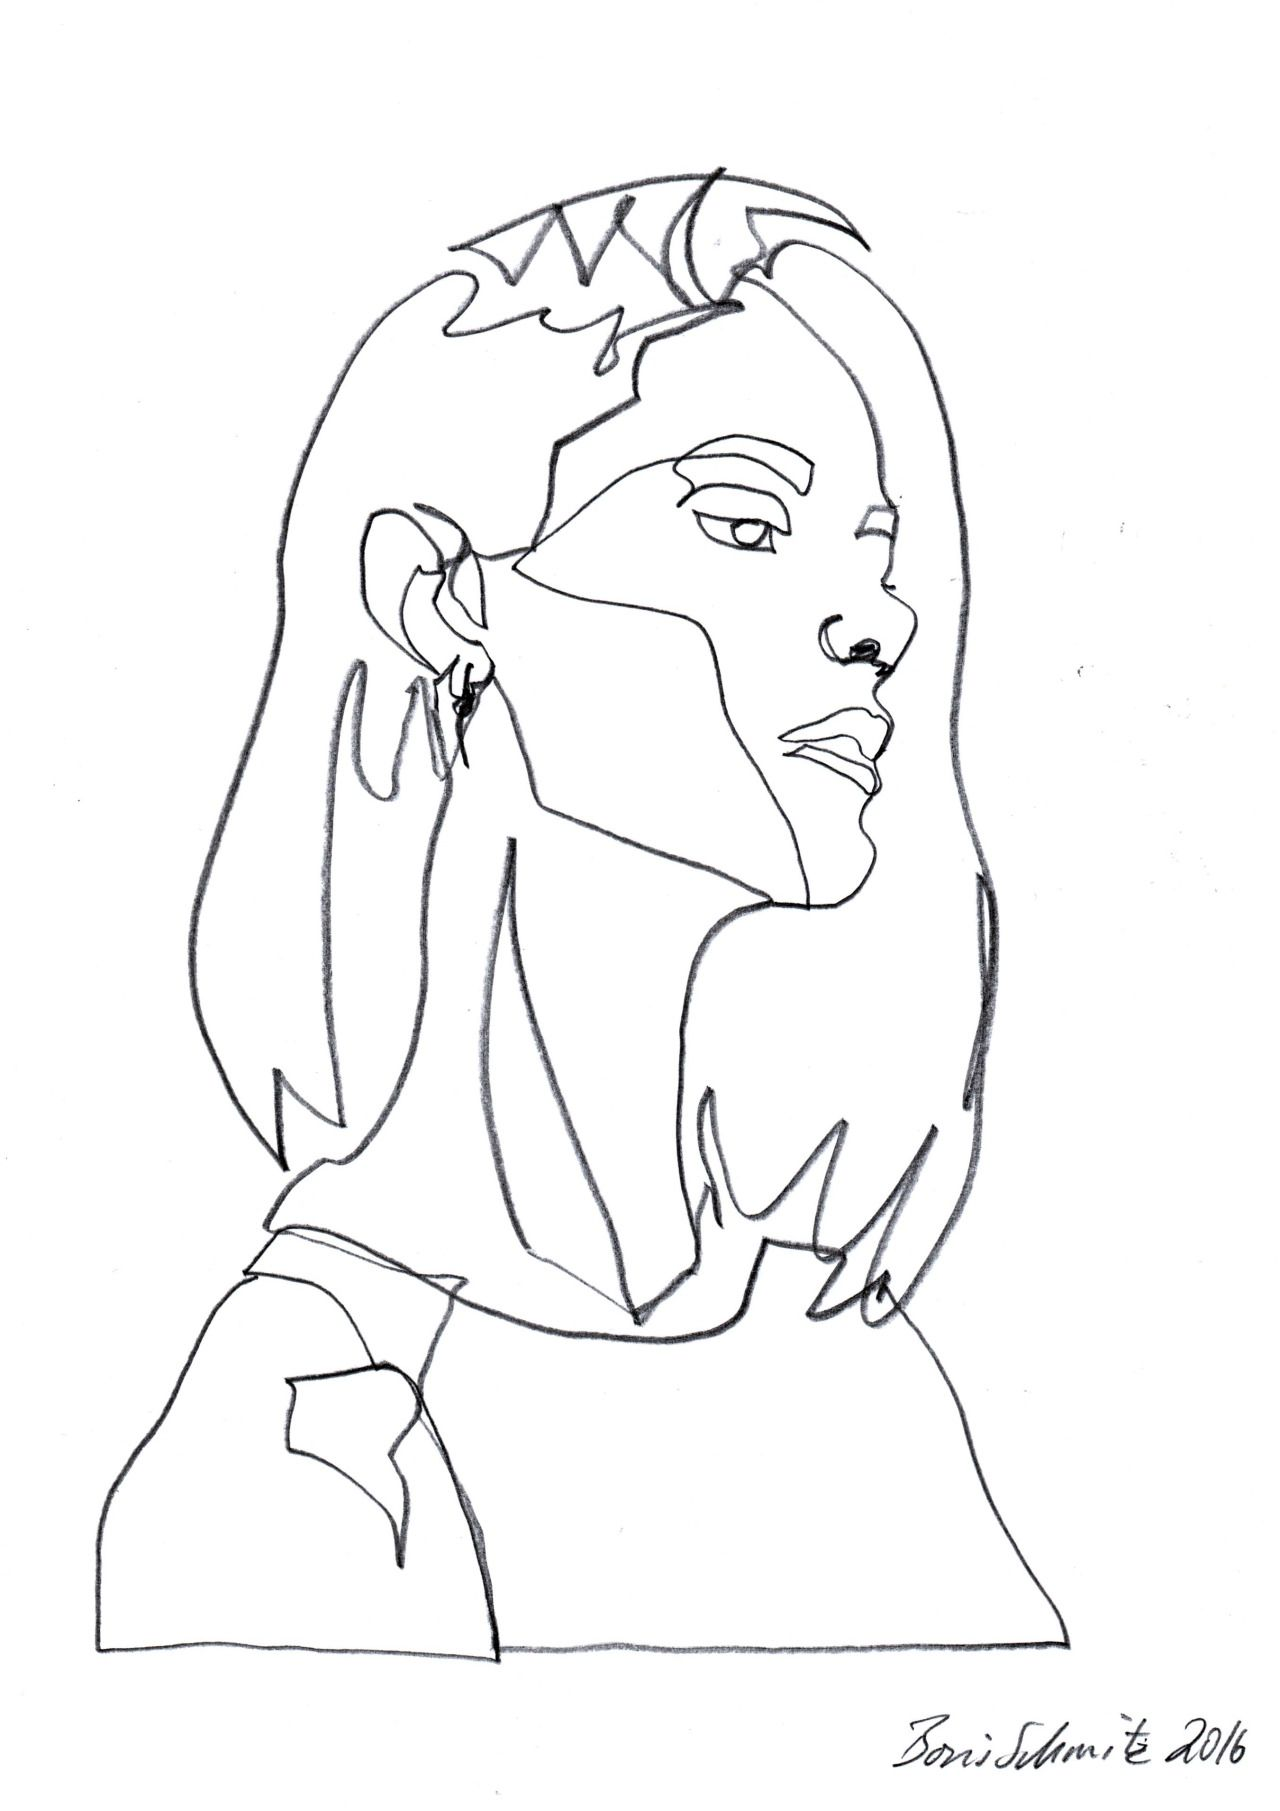 "Contour Line Drawing Person : ""gaze continuous line drawing by boris schmitz art"